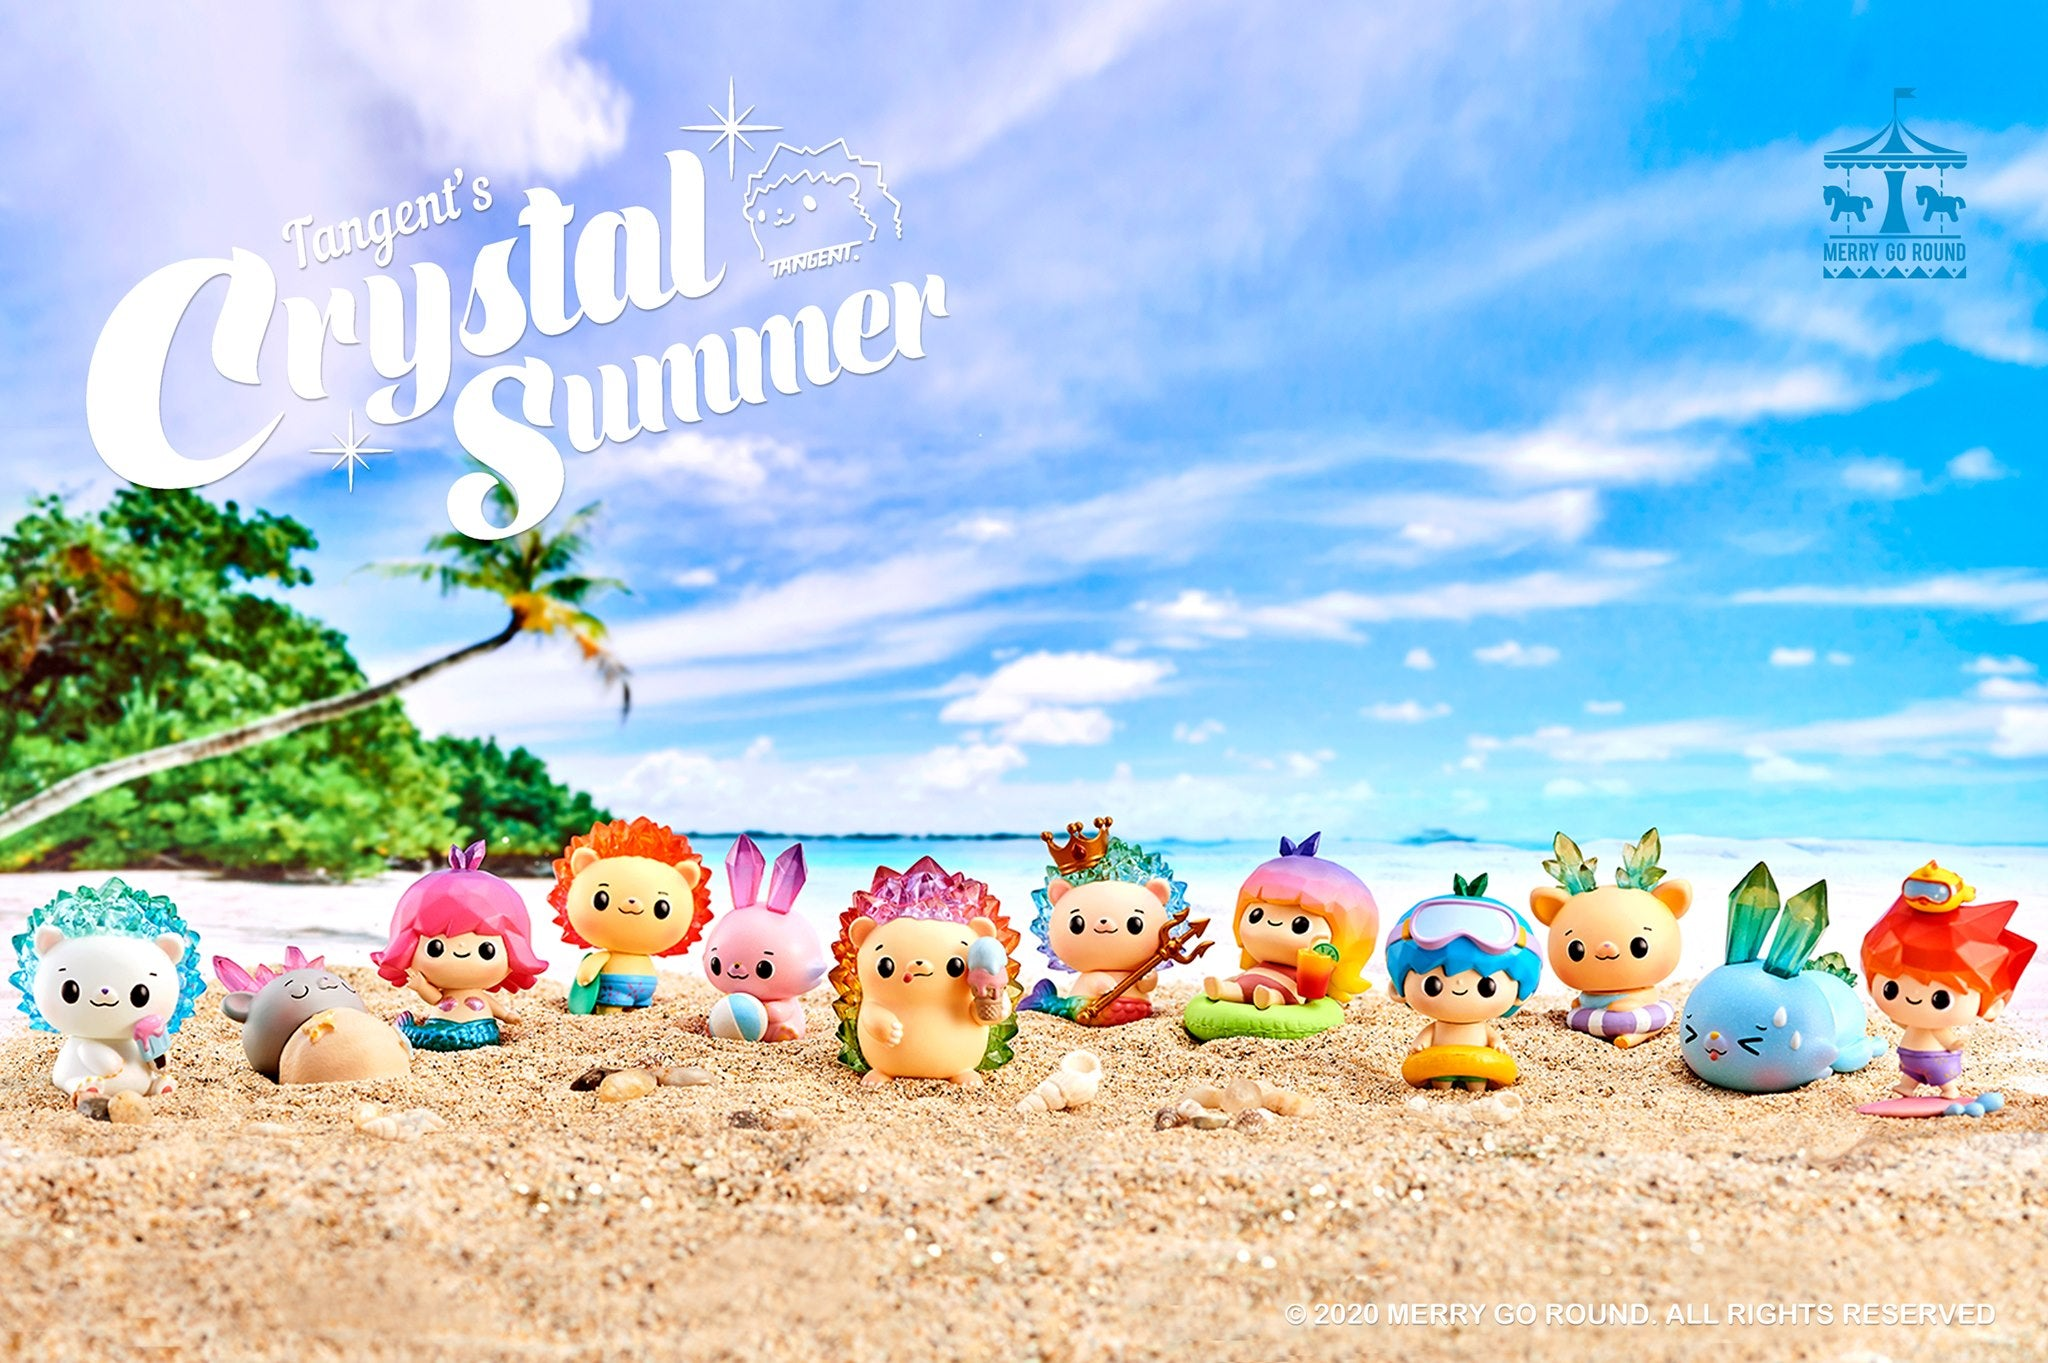 Tangent Crystal Summer Blindbox Series - Preorder